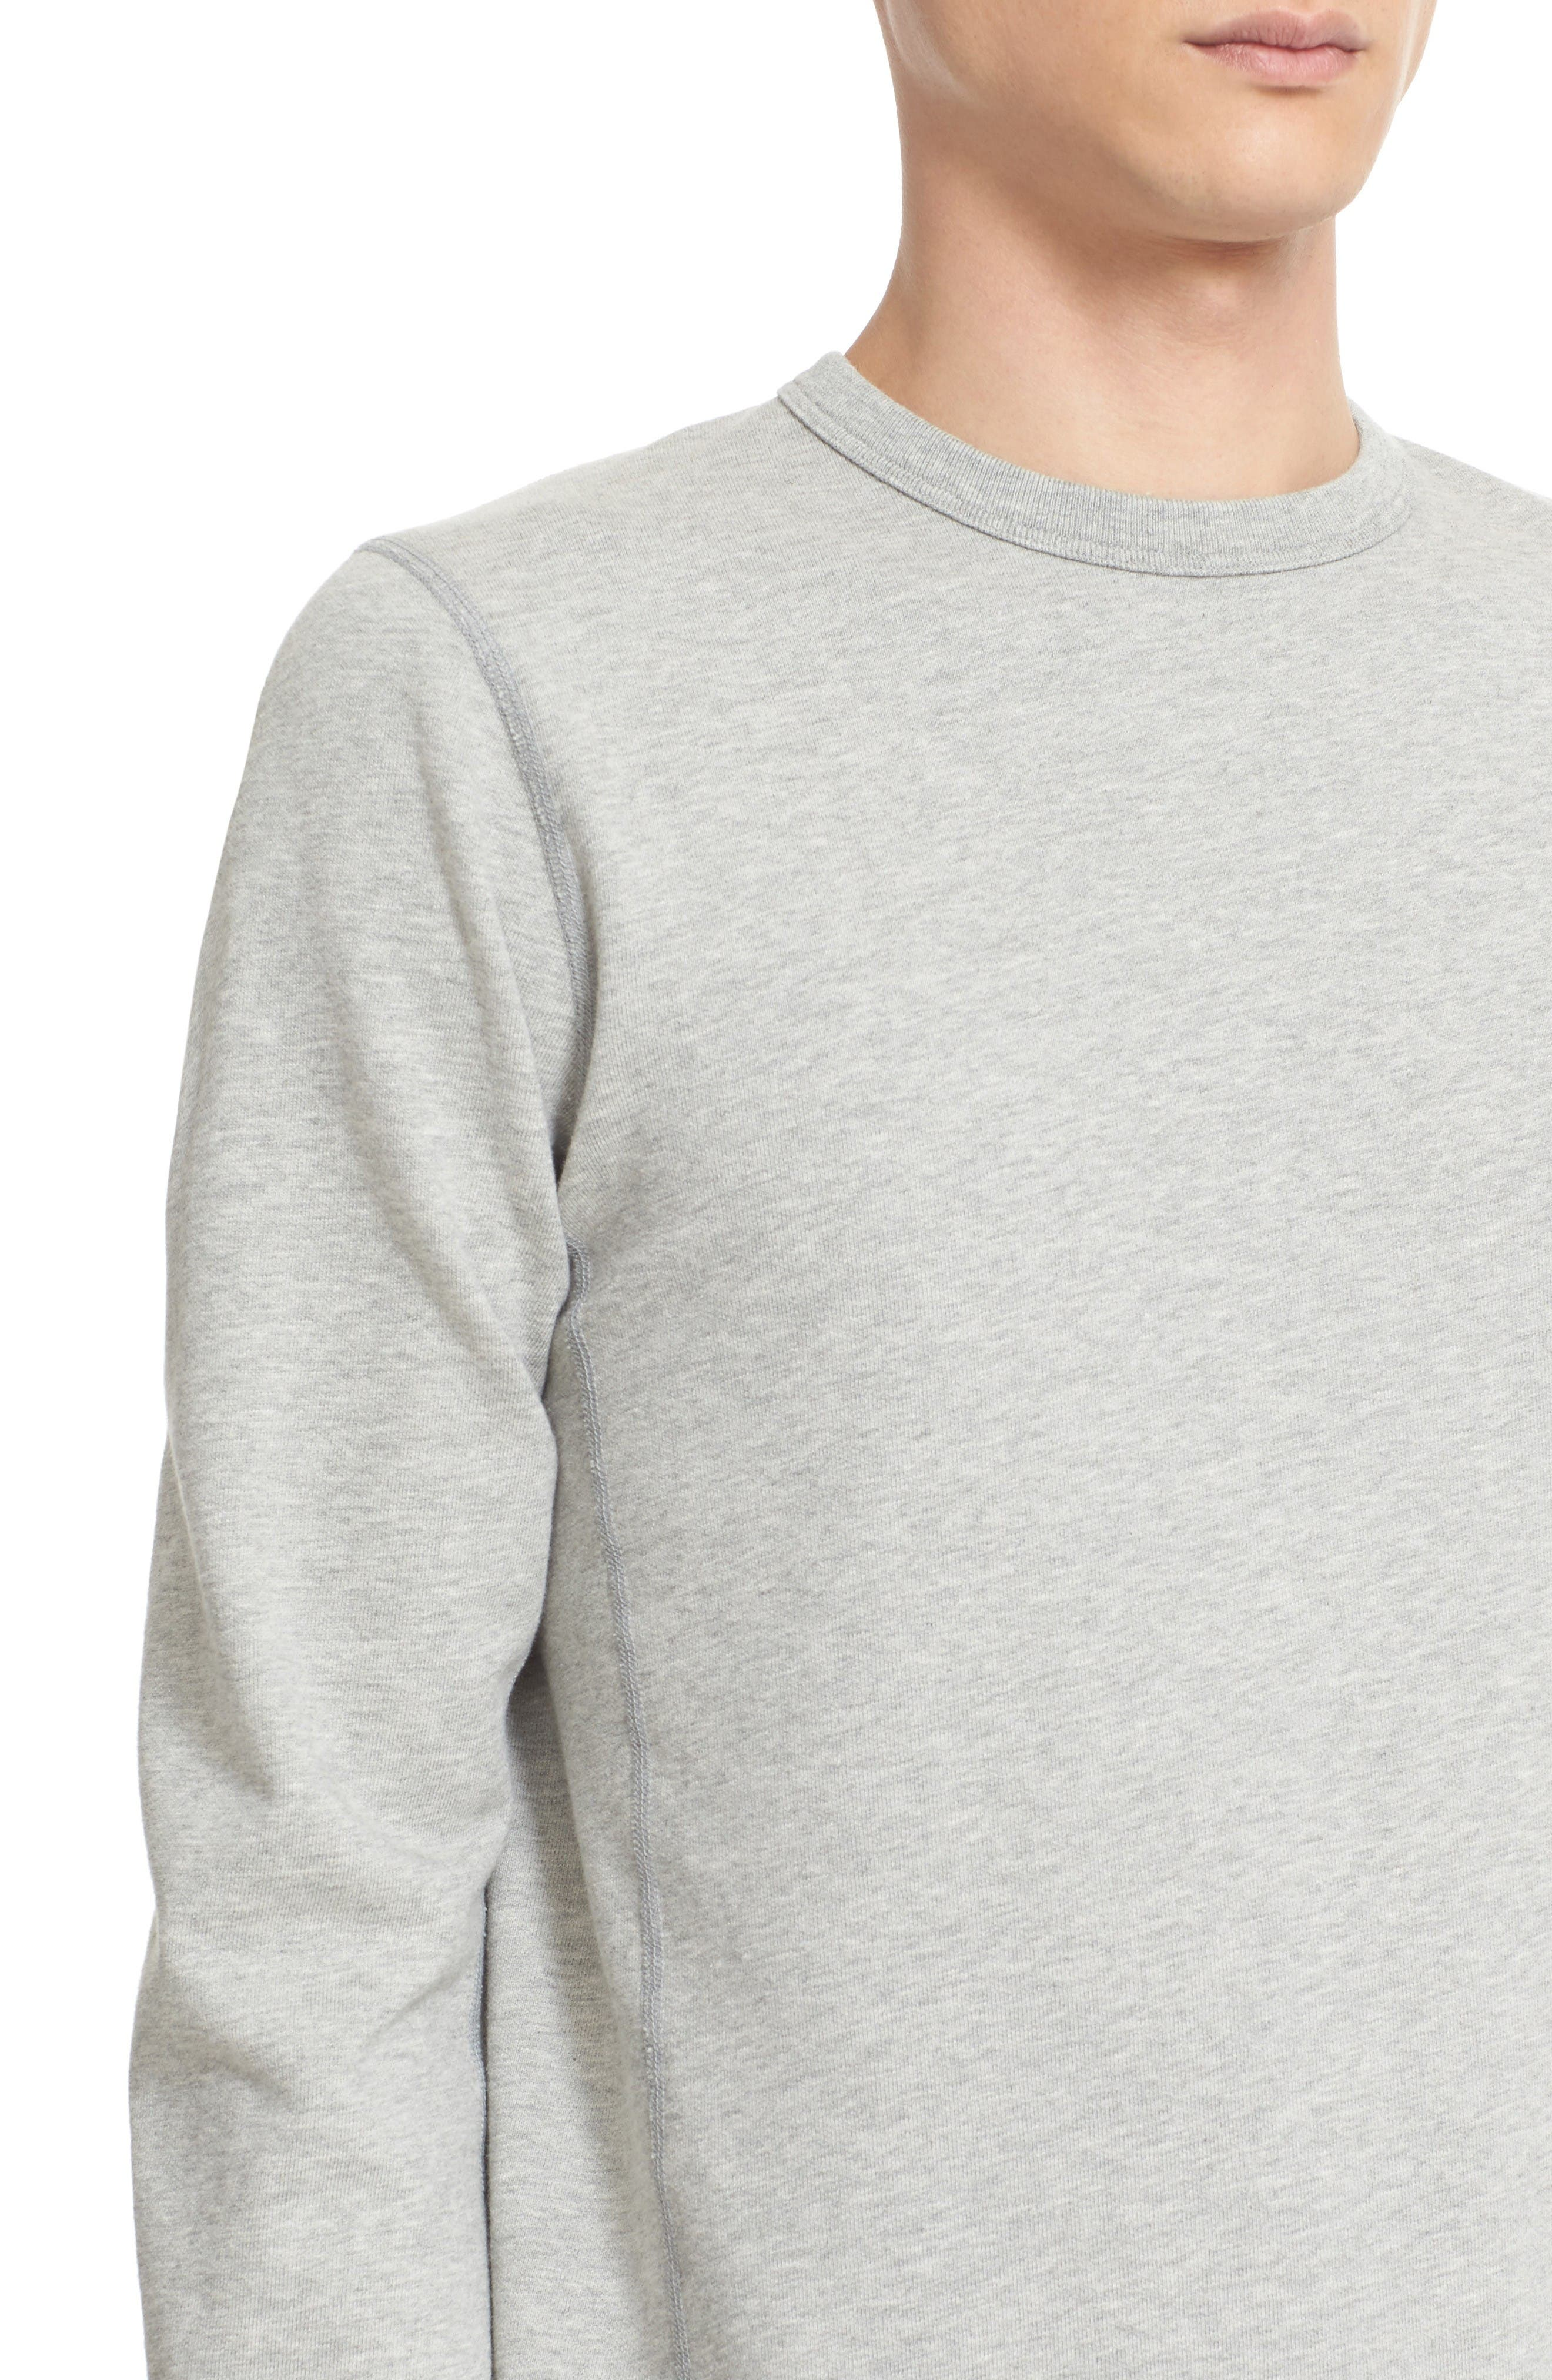 French Terry Sweatshirt,                             Alternate thumbnail 4, color,                             Heather Grey